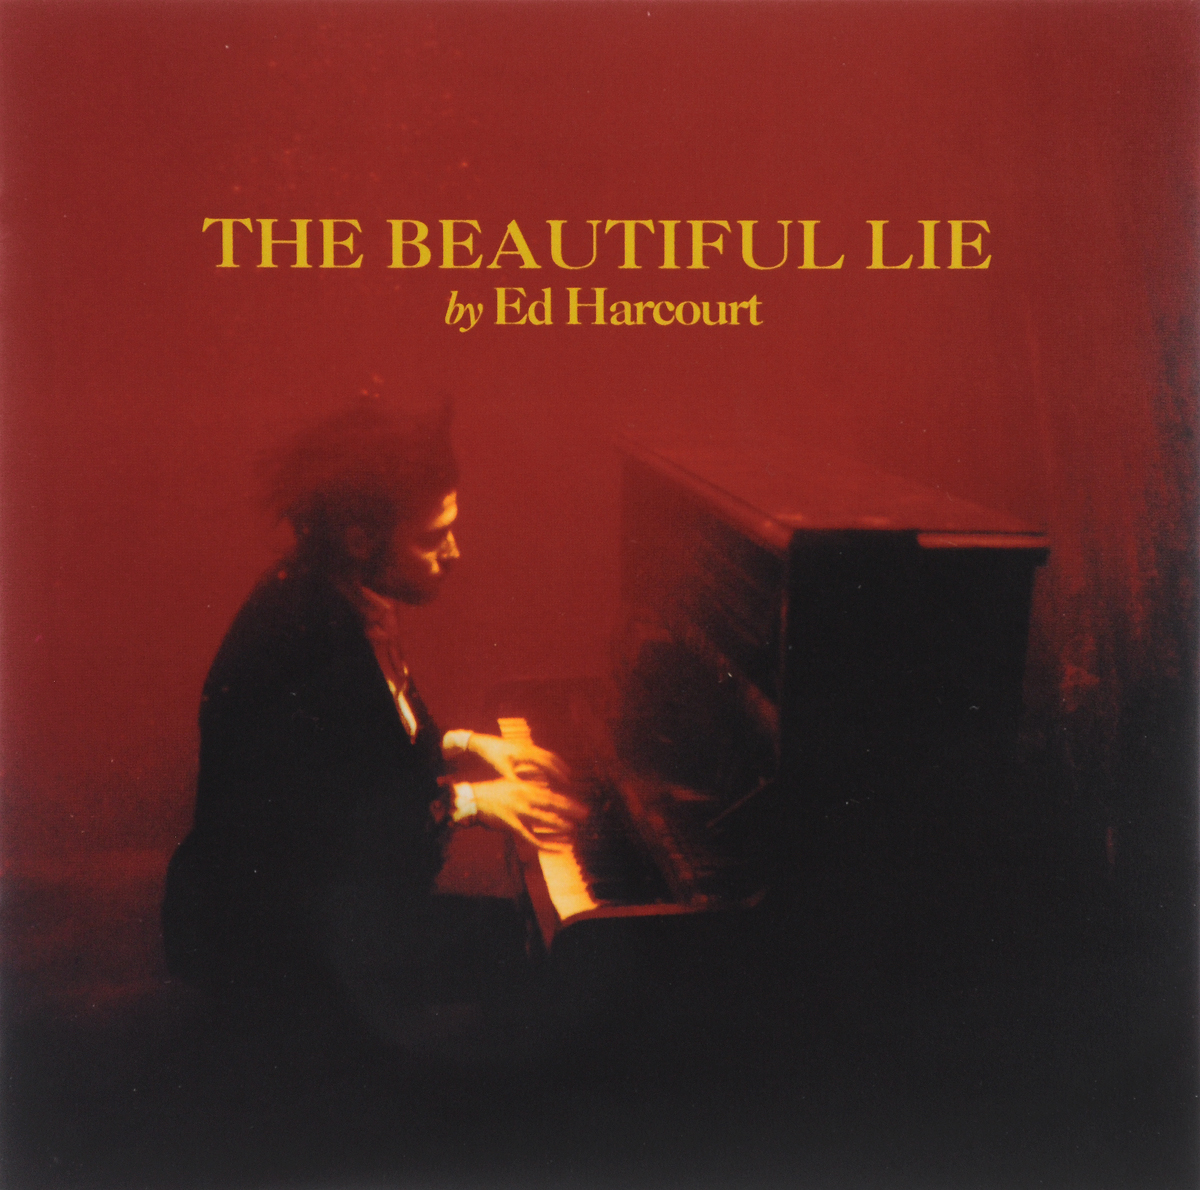 Эд Харкорт HARCOURT, ED. THE BEAUTIFUL LIE the lie